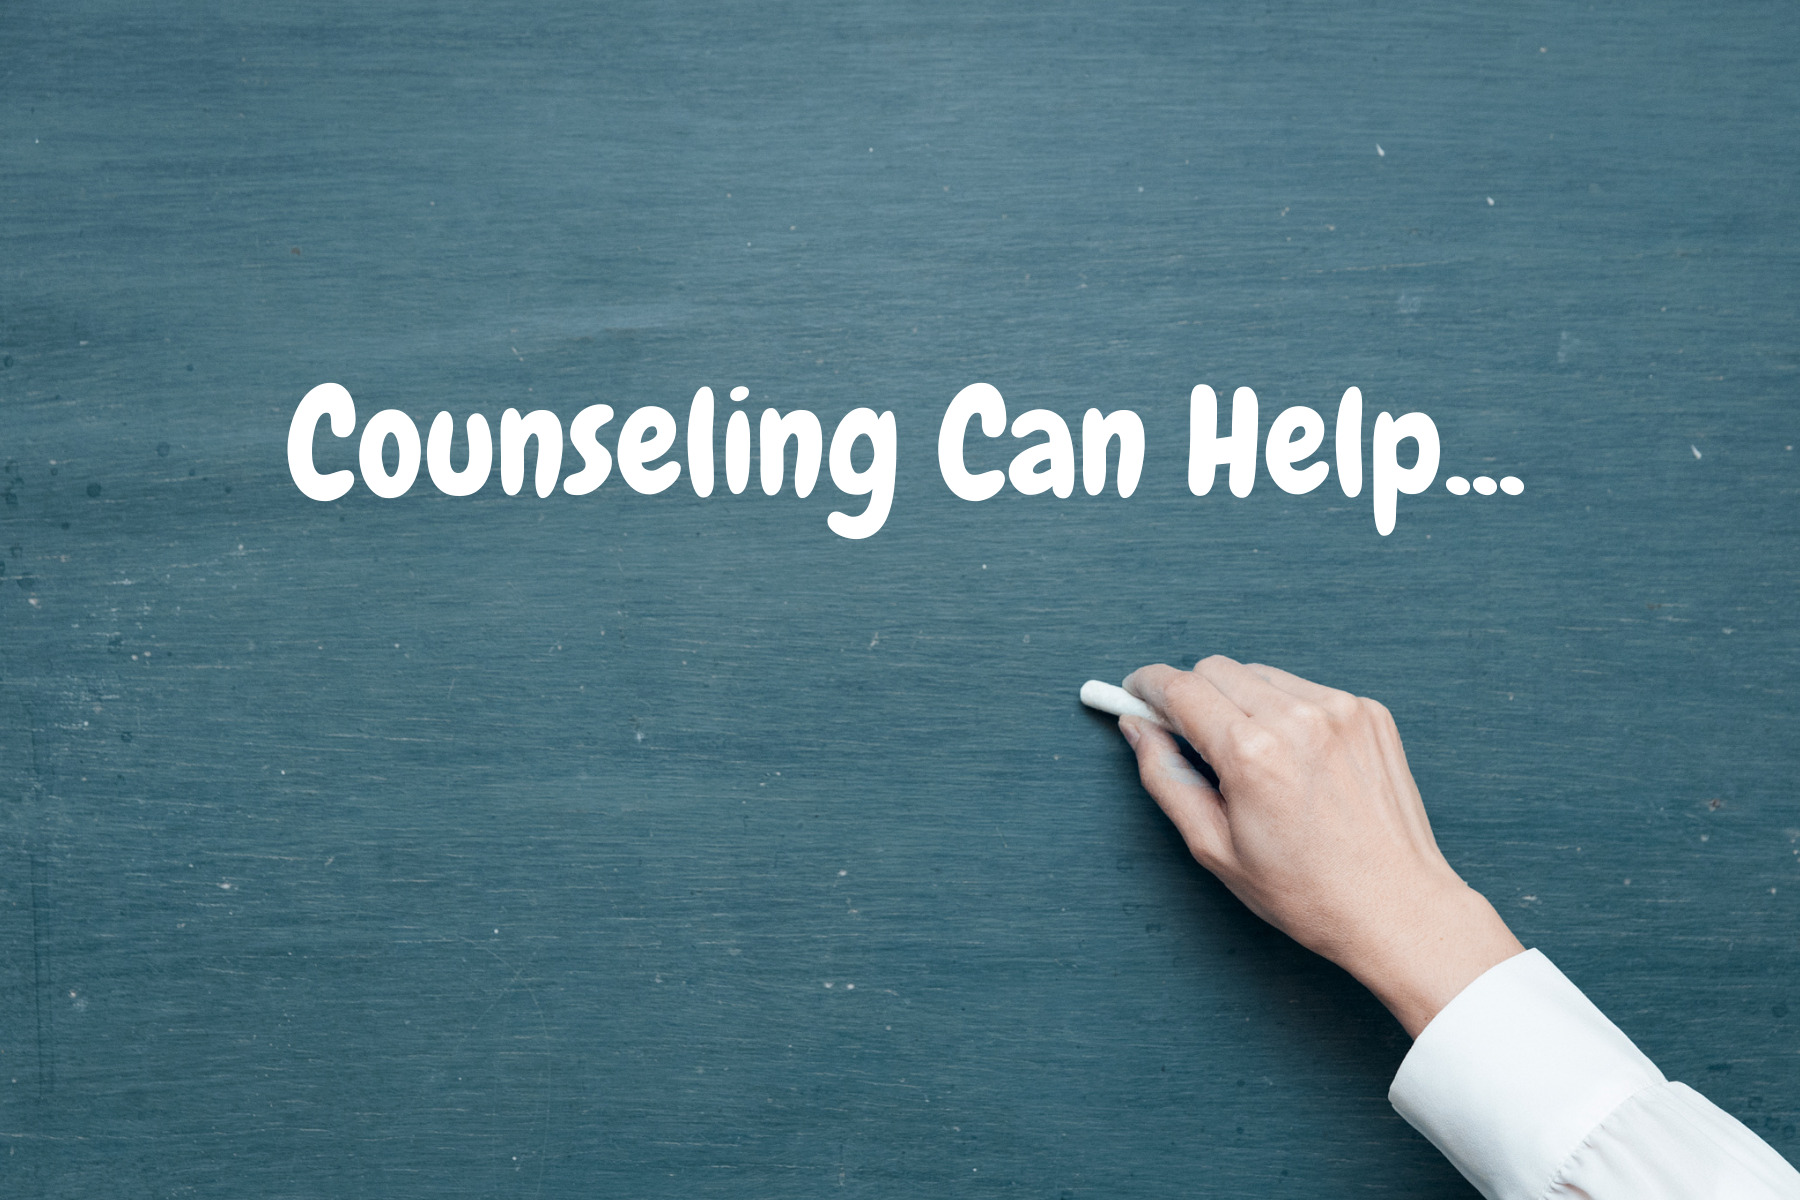 Counseling for people learn how to feel better, overcome emotional challenges, and live their best life. Santos Counseling offers counseling in office, located in the Greensboro North Carolina office as well as online counseling to anyone in the state of North Carolina.